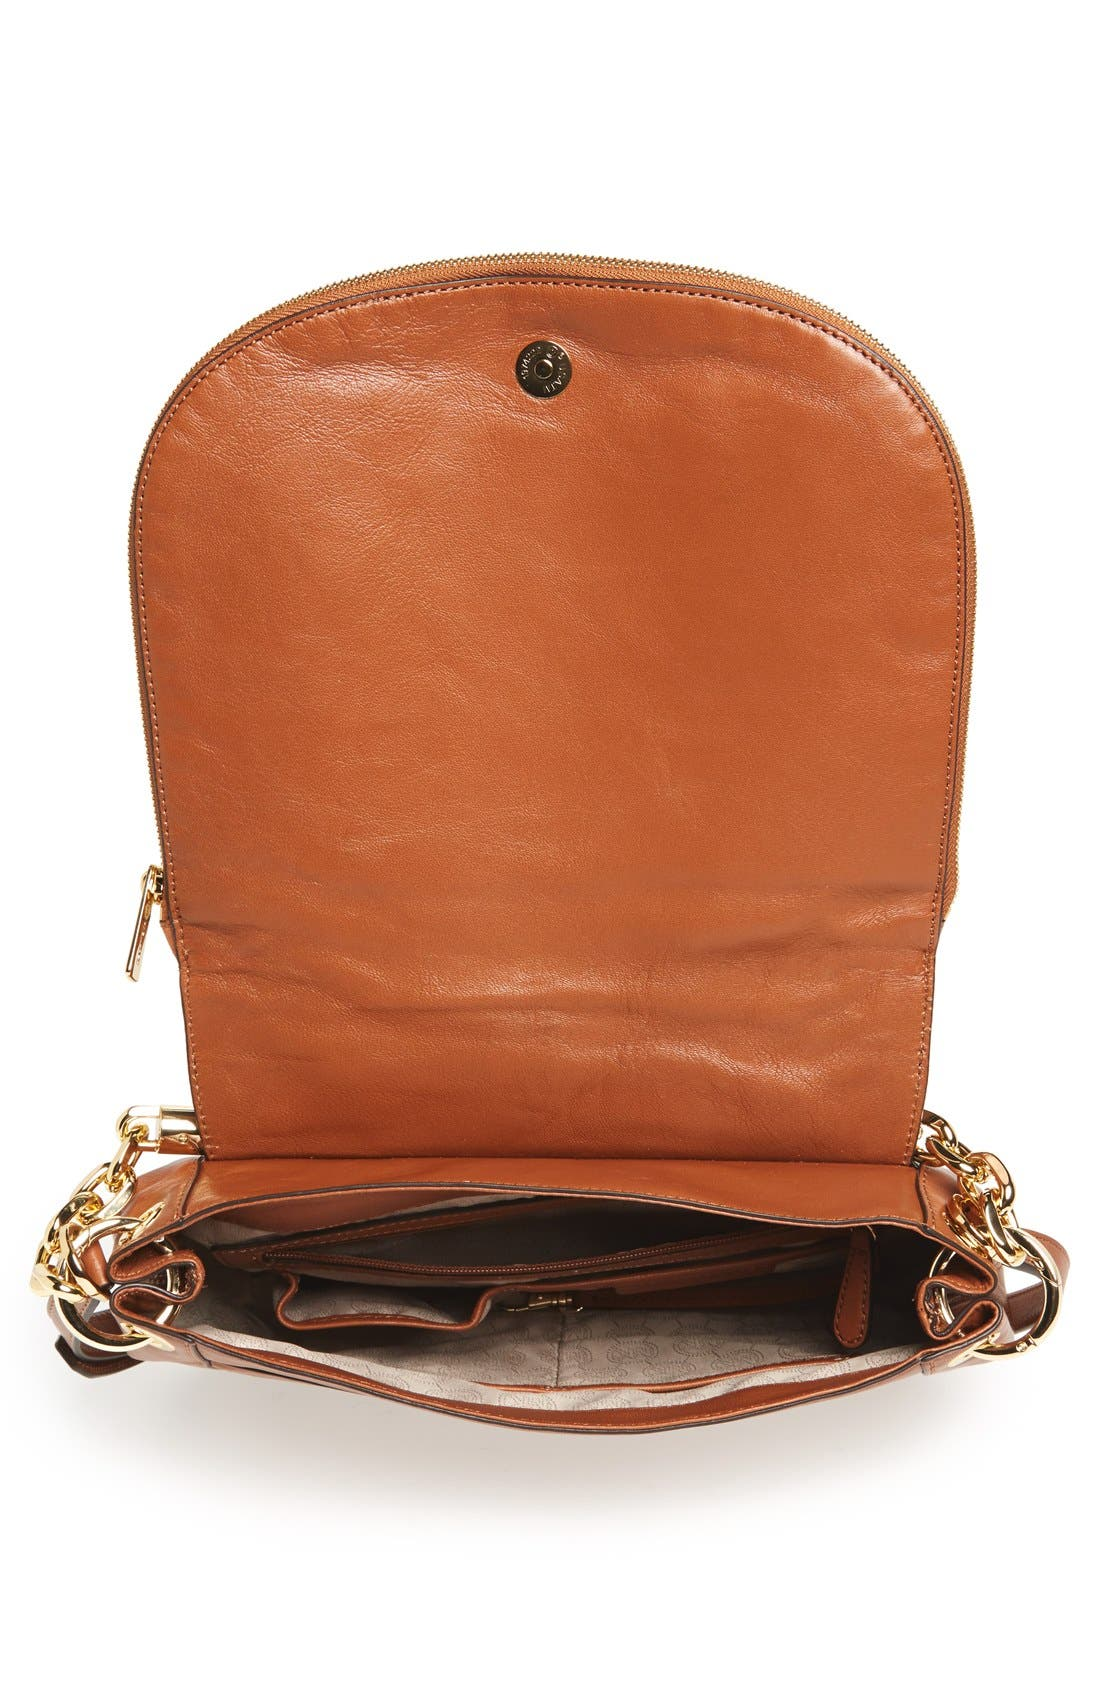 Alternate Image 3  - MICHAEL Michael Kors 'Stanthorpe' Shoulder Bag